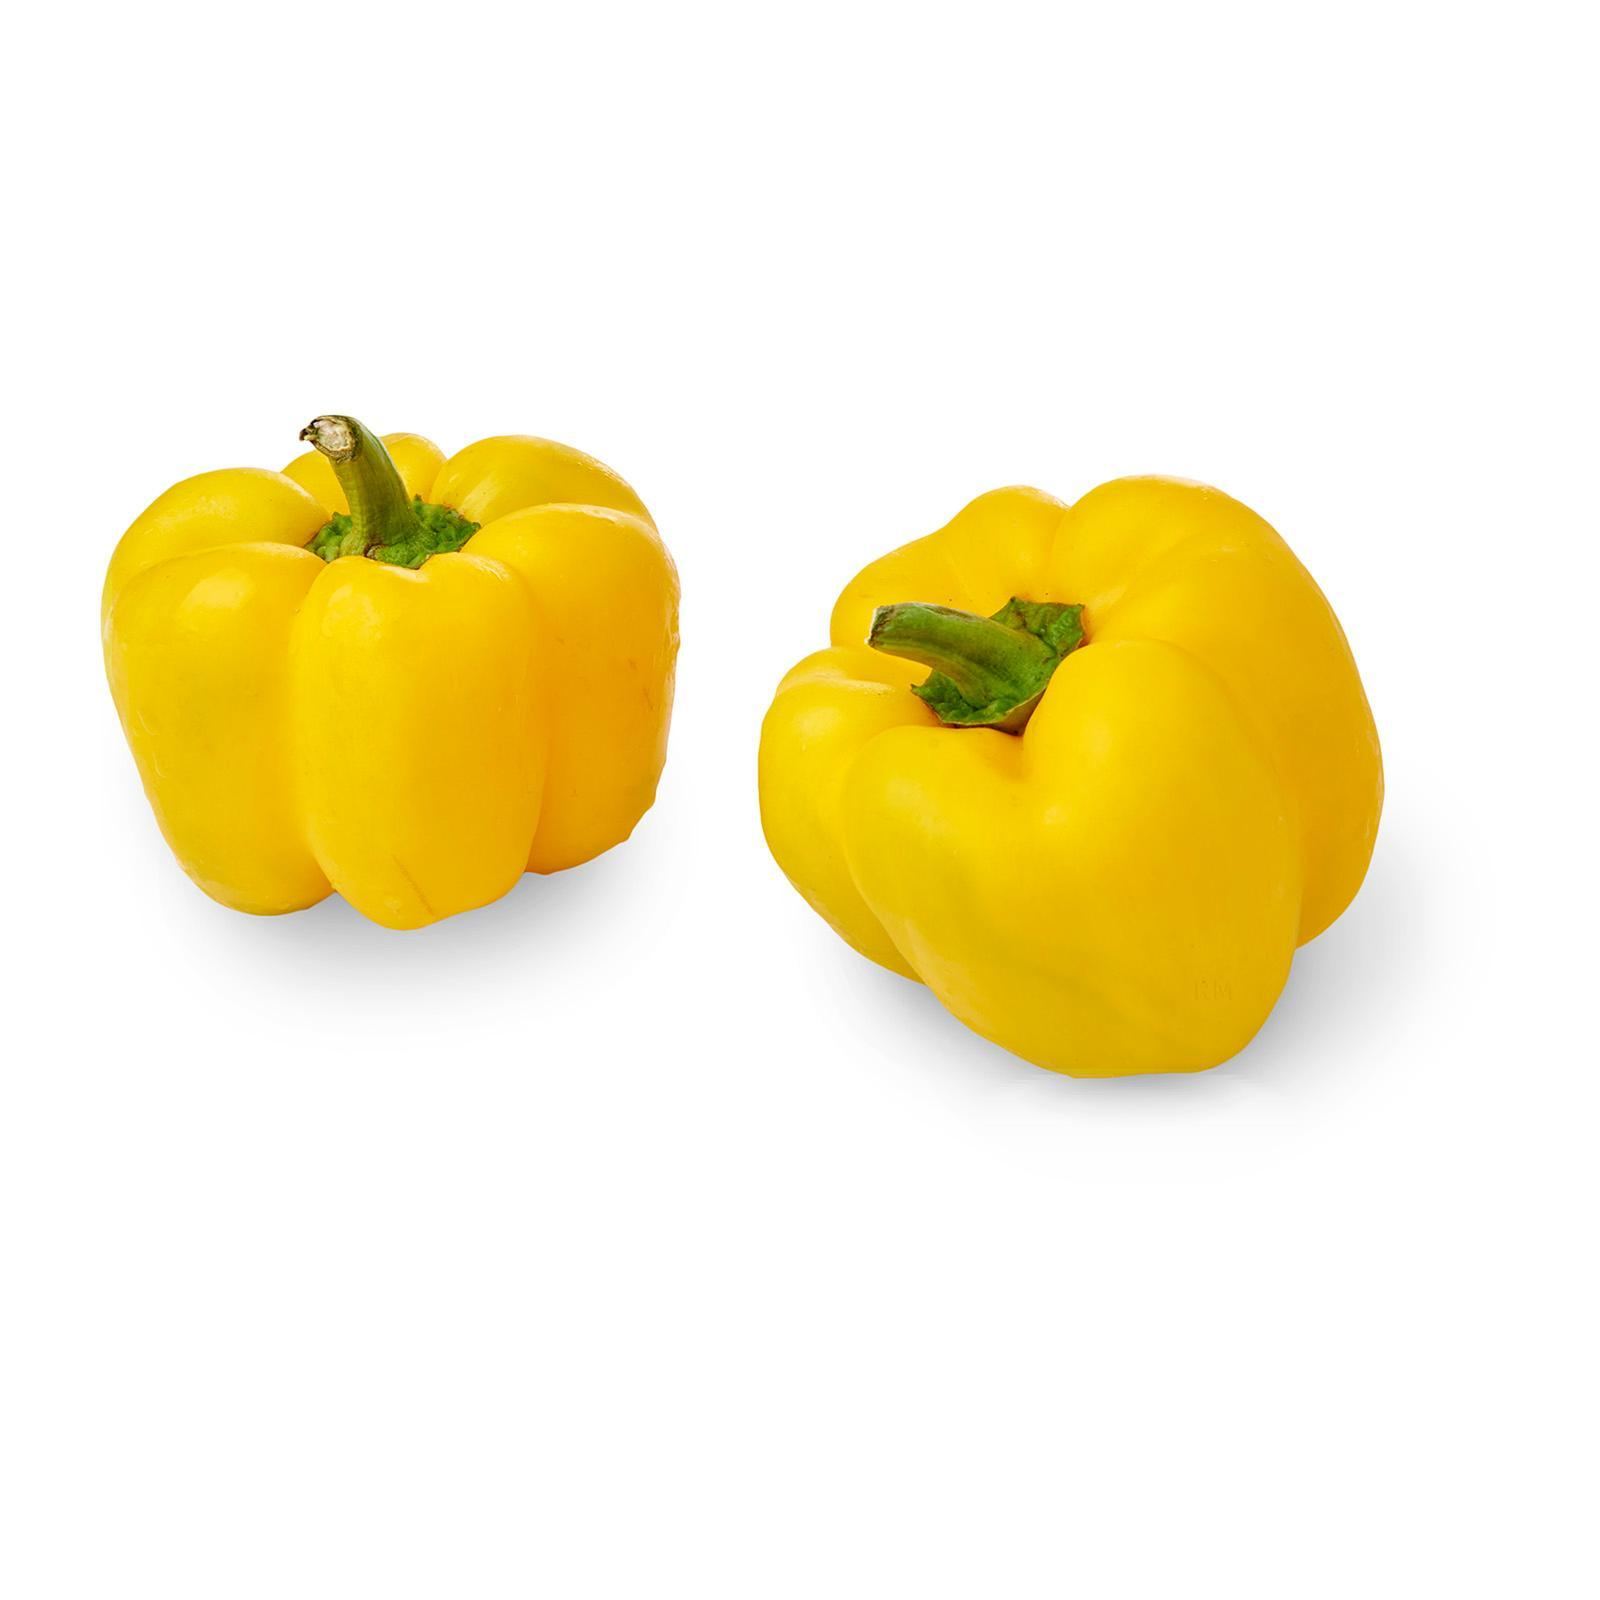 Thygrace Yellow Capsicum - 2 Pieces By Redmart.